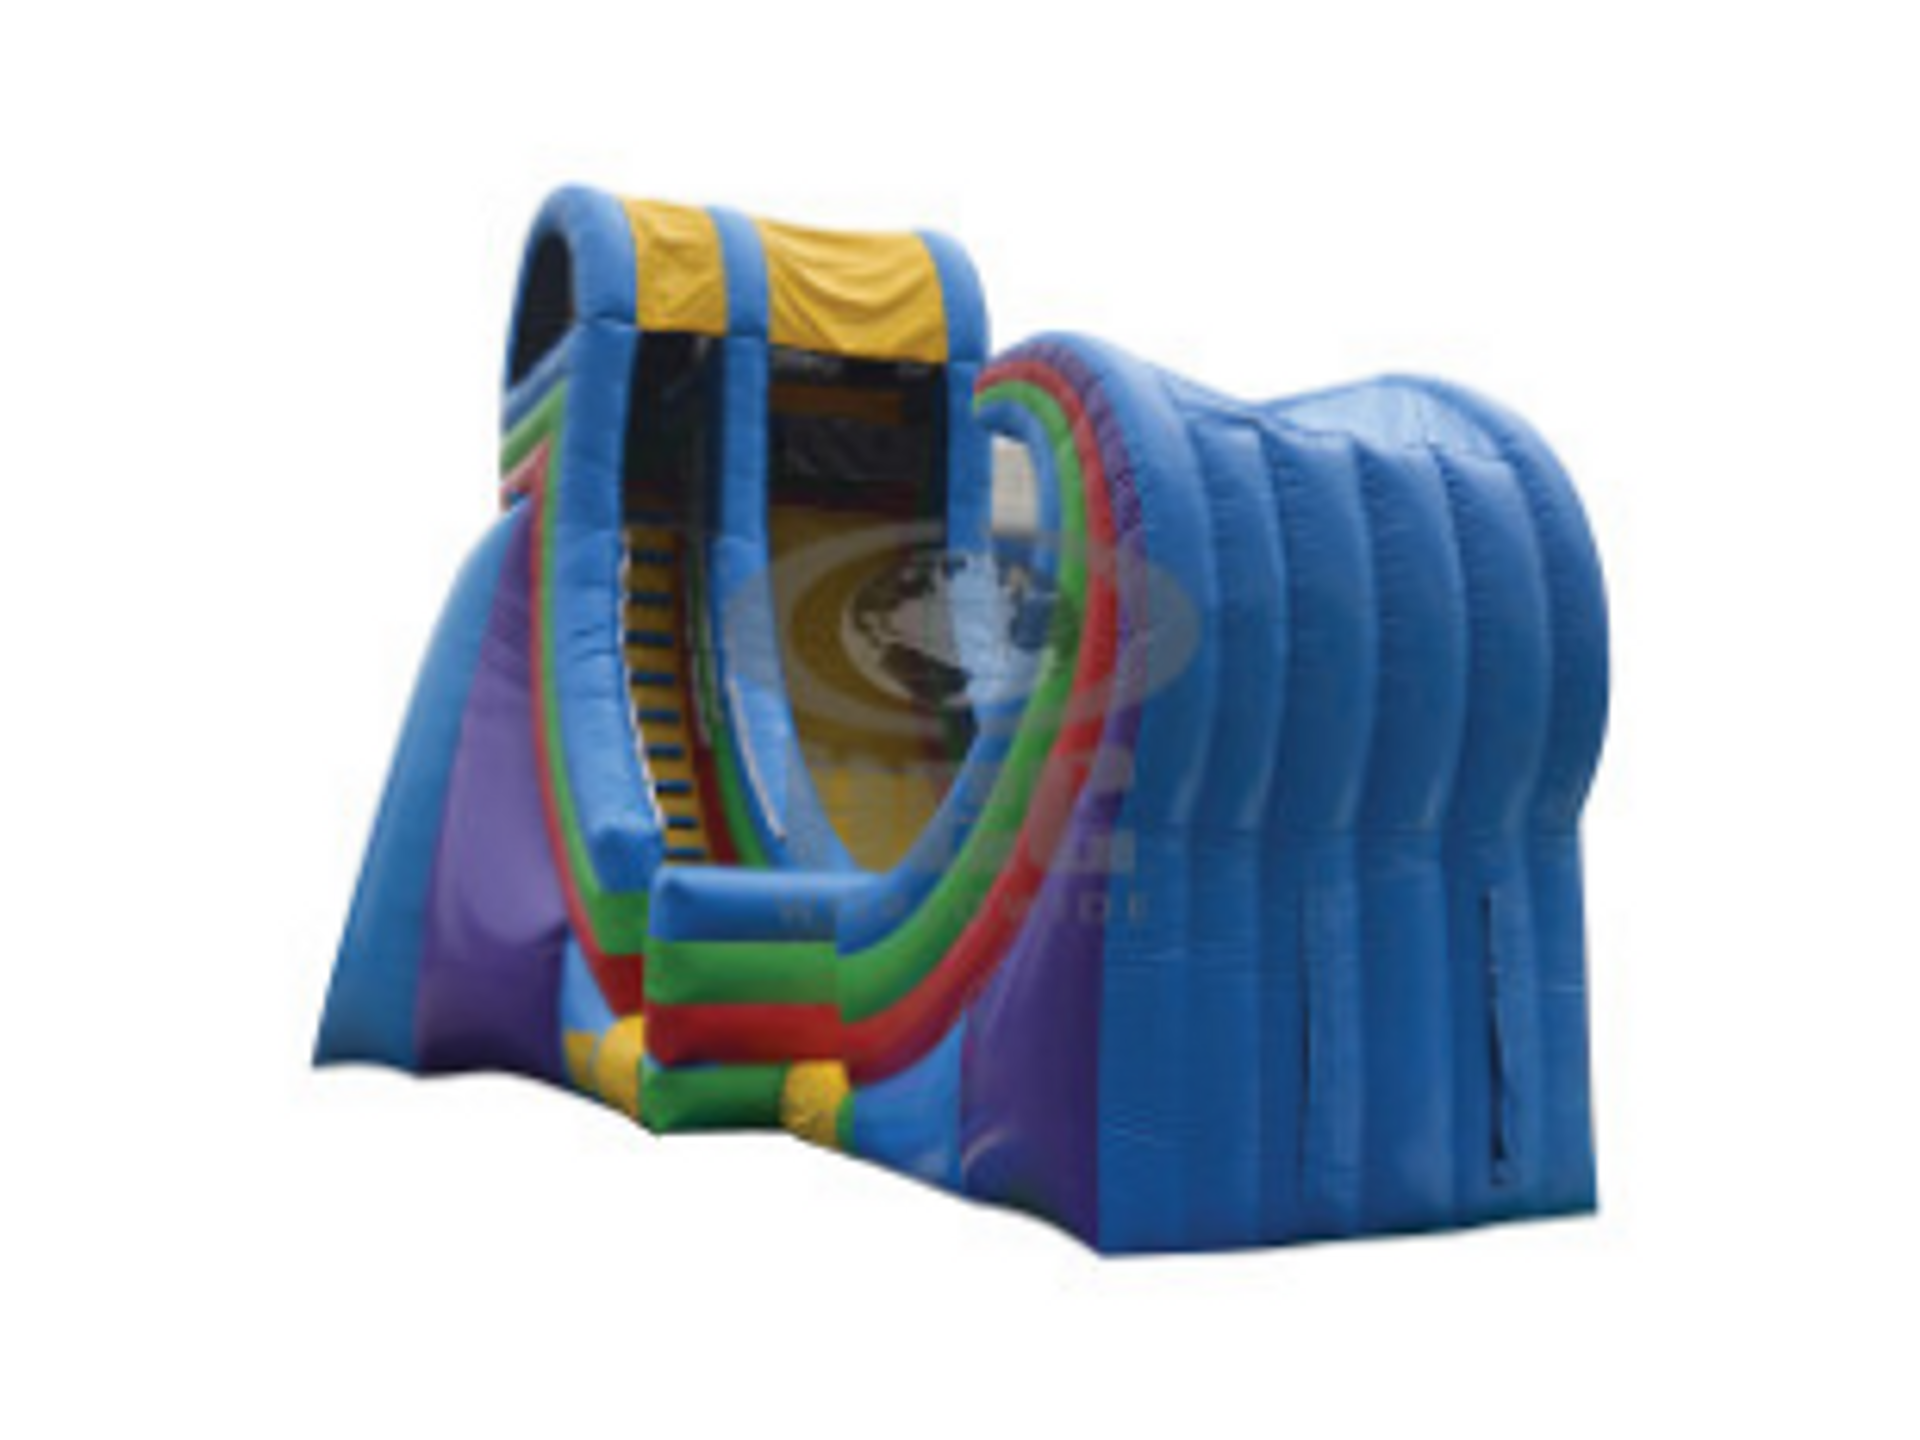 Discount Inflatable Bounce house rentals, Huge selection, great service, Long Island Ny Party Rentals, Bouncers, Tents, Waterslides, Games, Dunk tanks